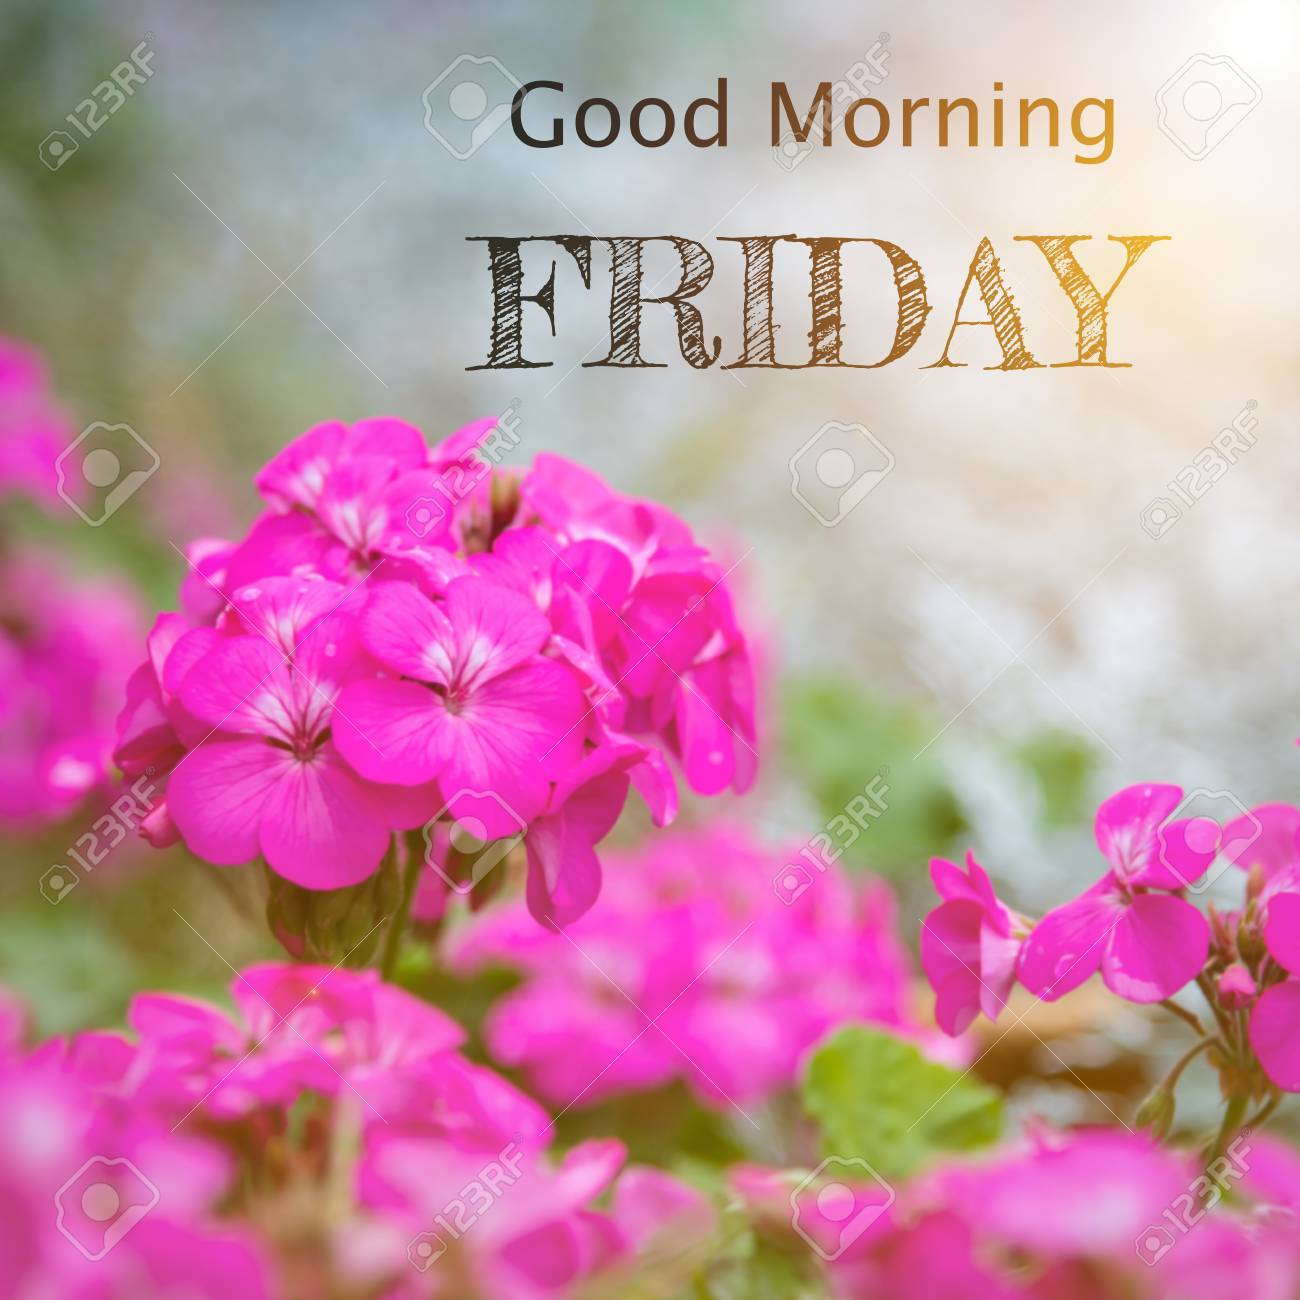 Good Morning Friday Stock Photo Picture And Royalty Free Image